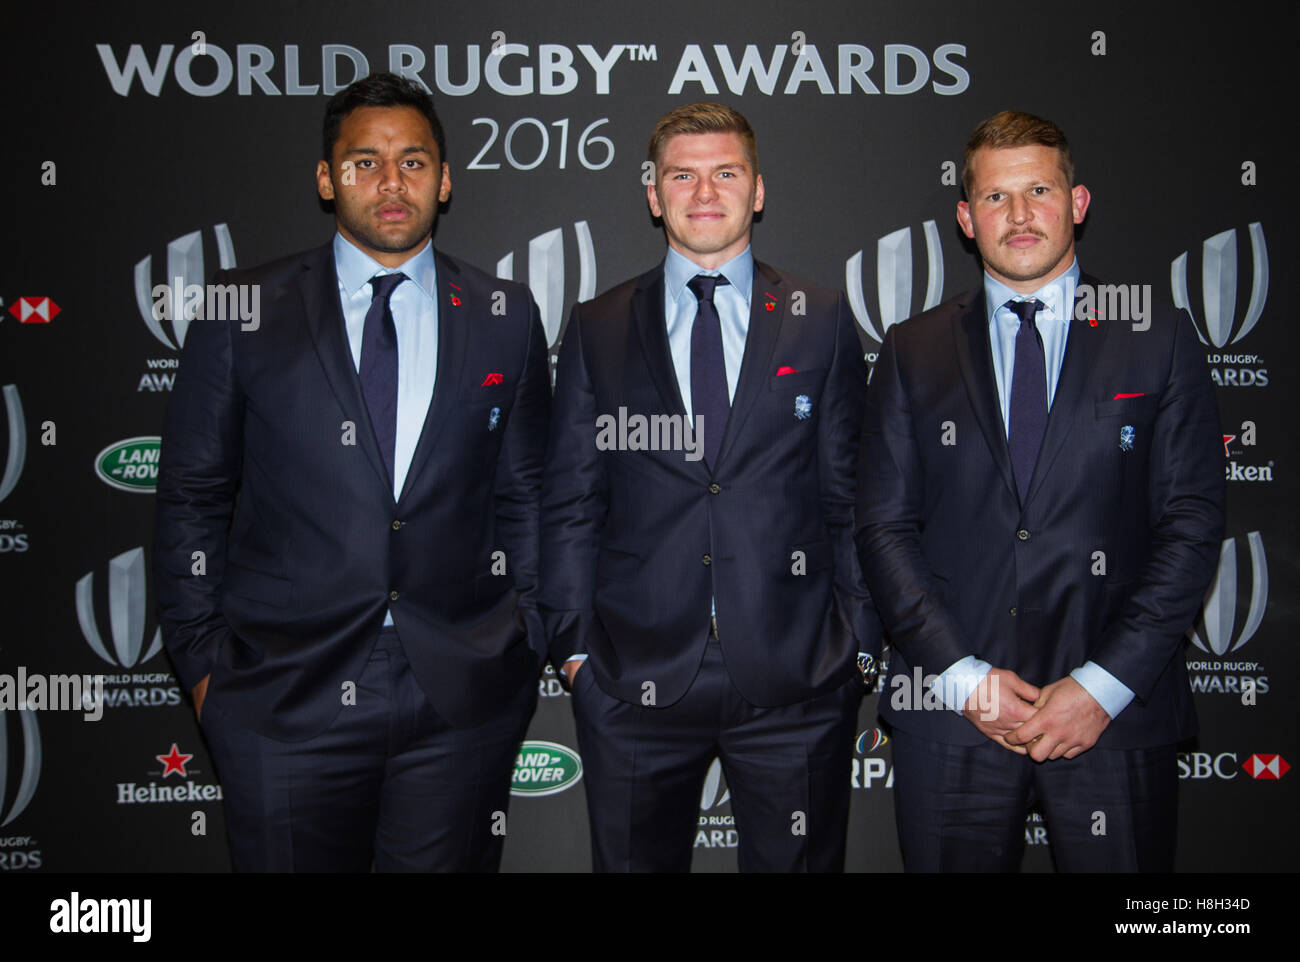 London, UK. 13th November 2016. England rugby players Billy Vunipola, Owen Farrell and Dylan Hartley (England captain) - Stock Image